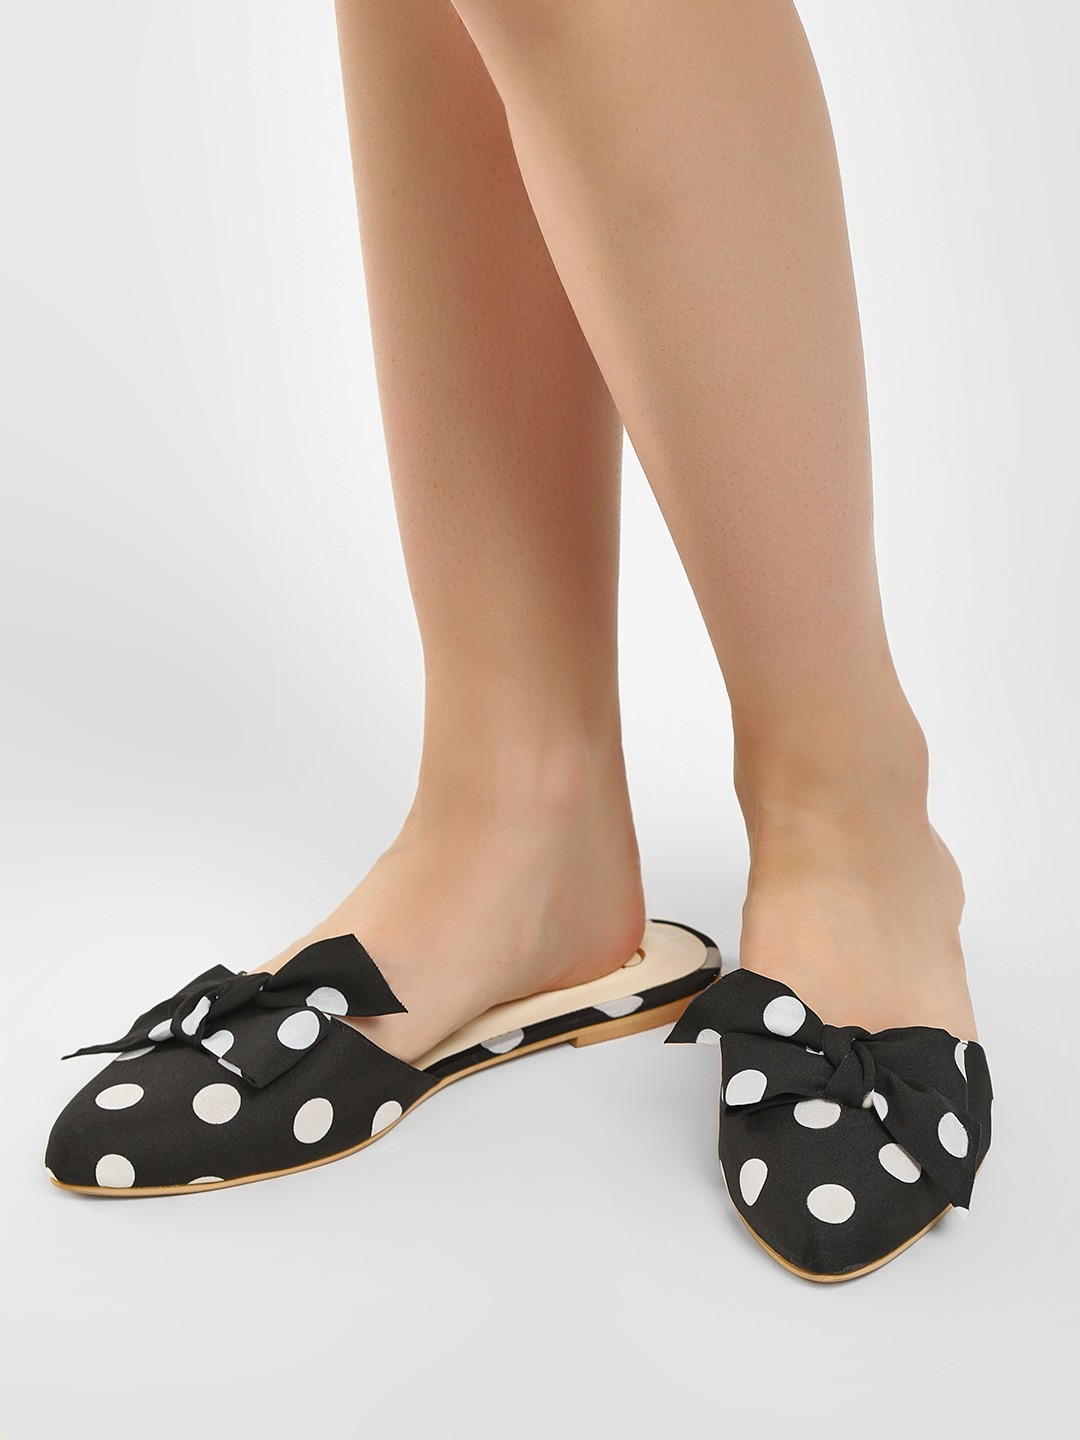 CAi Black Polka Dot Bow Detail Slides 1